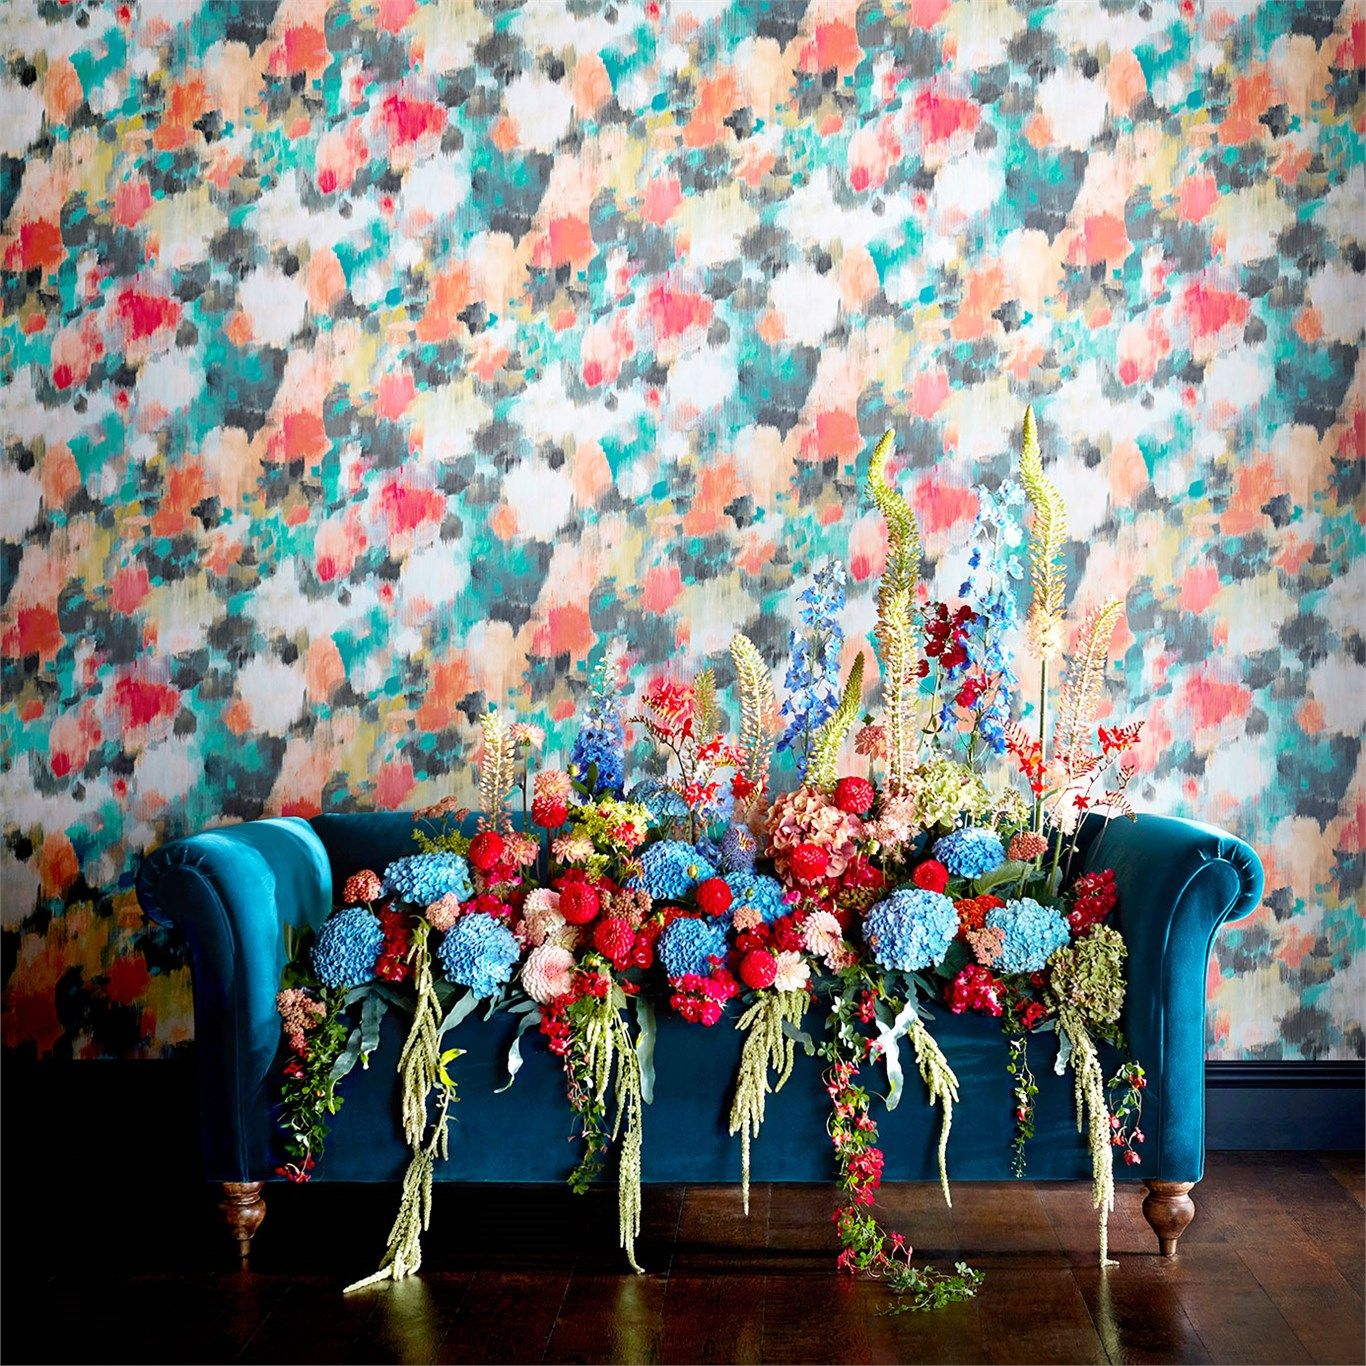 Products harlequin designer fabrics and wallpapers paradise - Products Harlequin Designer Fabrics And Wallpapers Exuberance Hsto111476 Standing Ovation